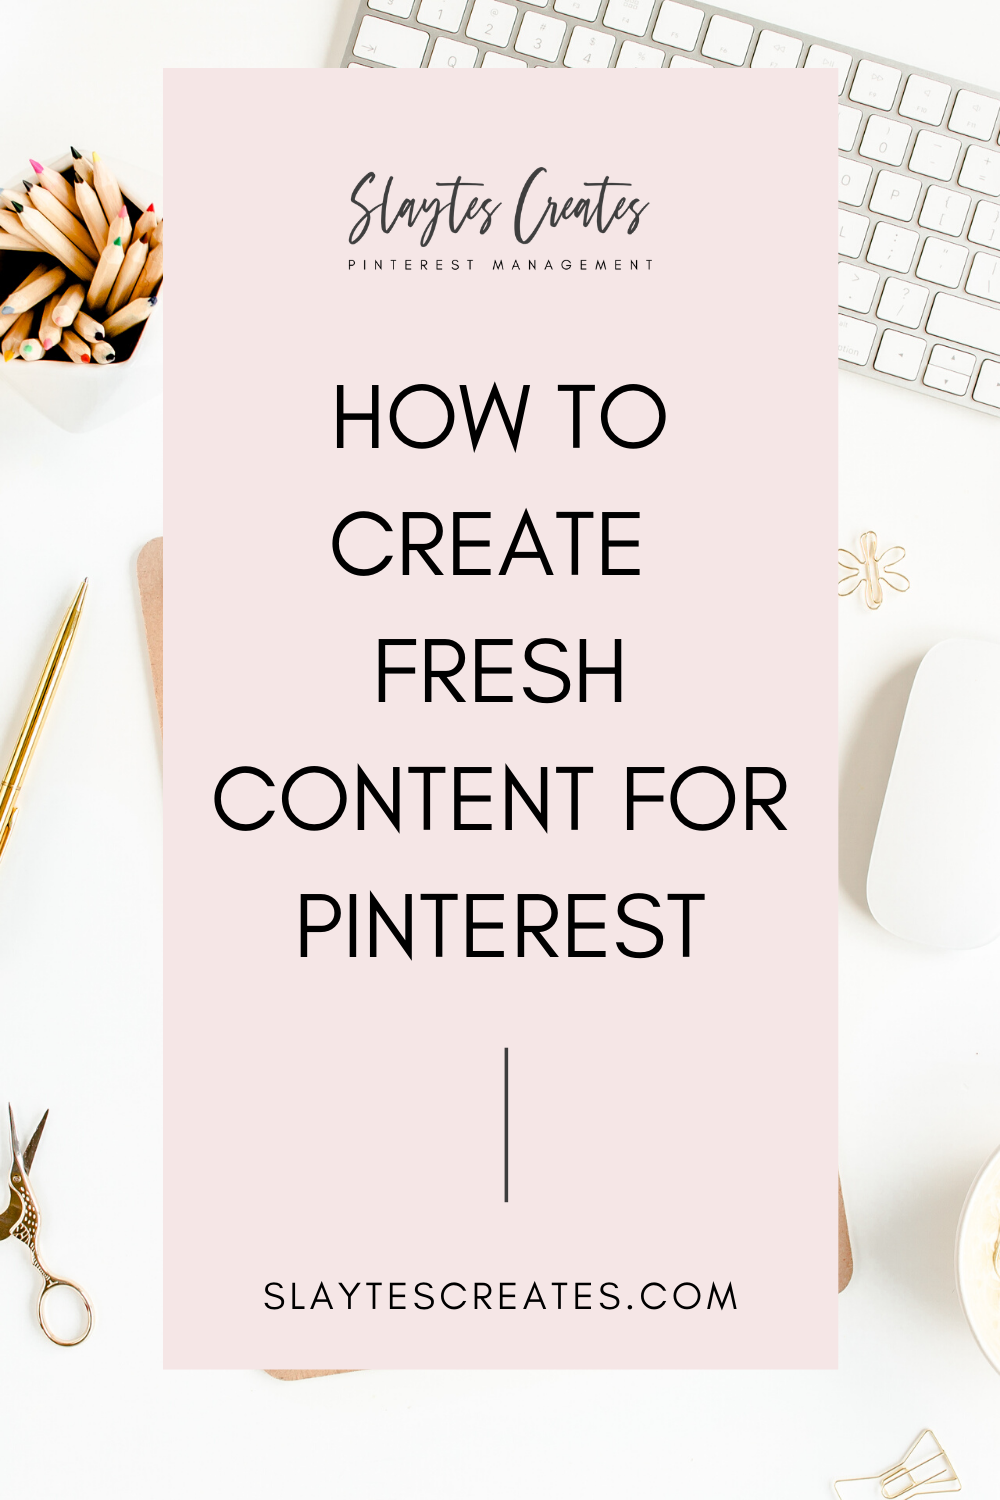 How to create fresh content for Pinterest Slaytes Creates